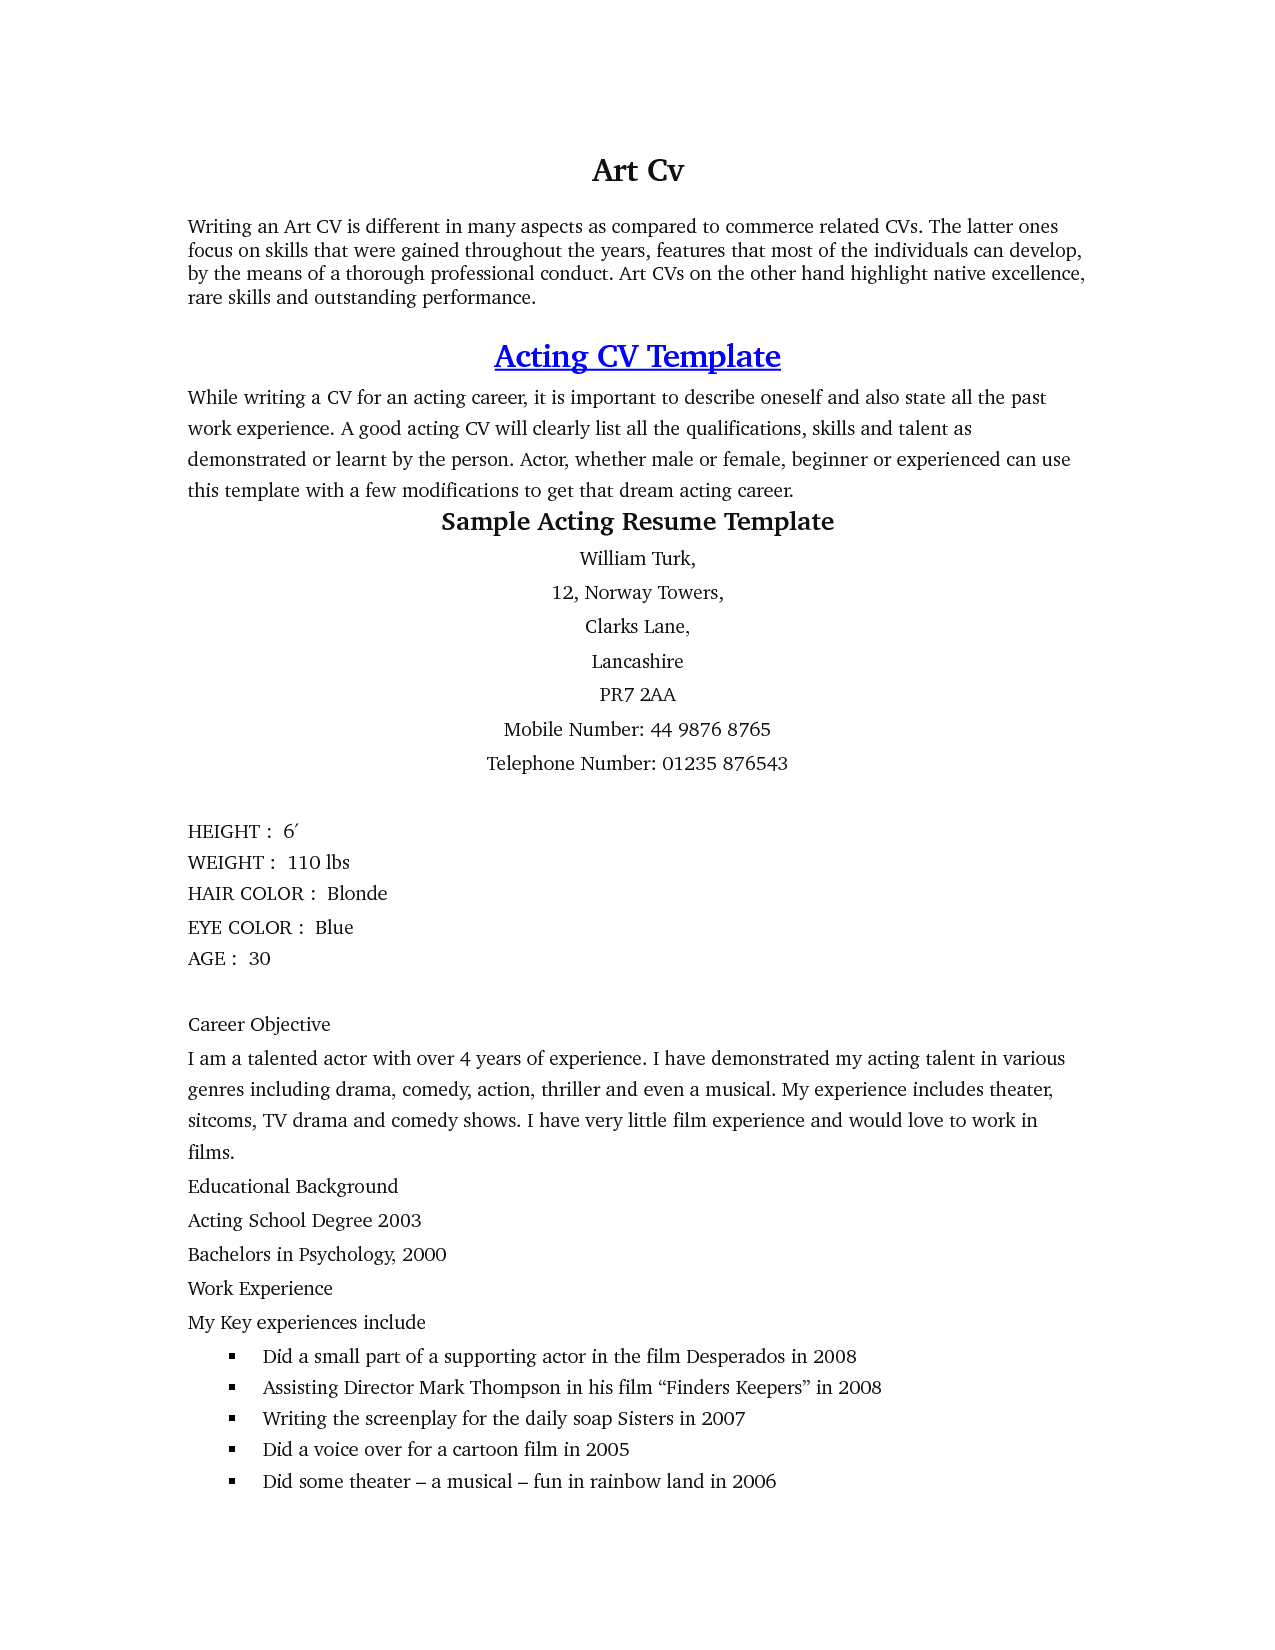 Beginner Resume Examples Acting Resume Sample Beginner  Httpwww.resumecareer .